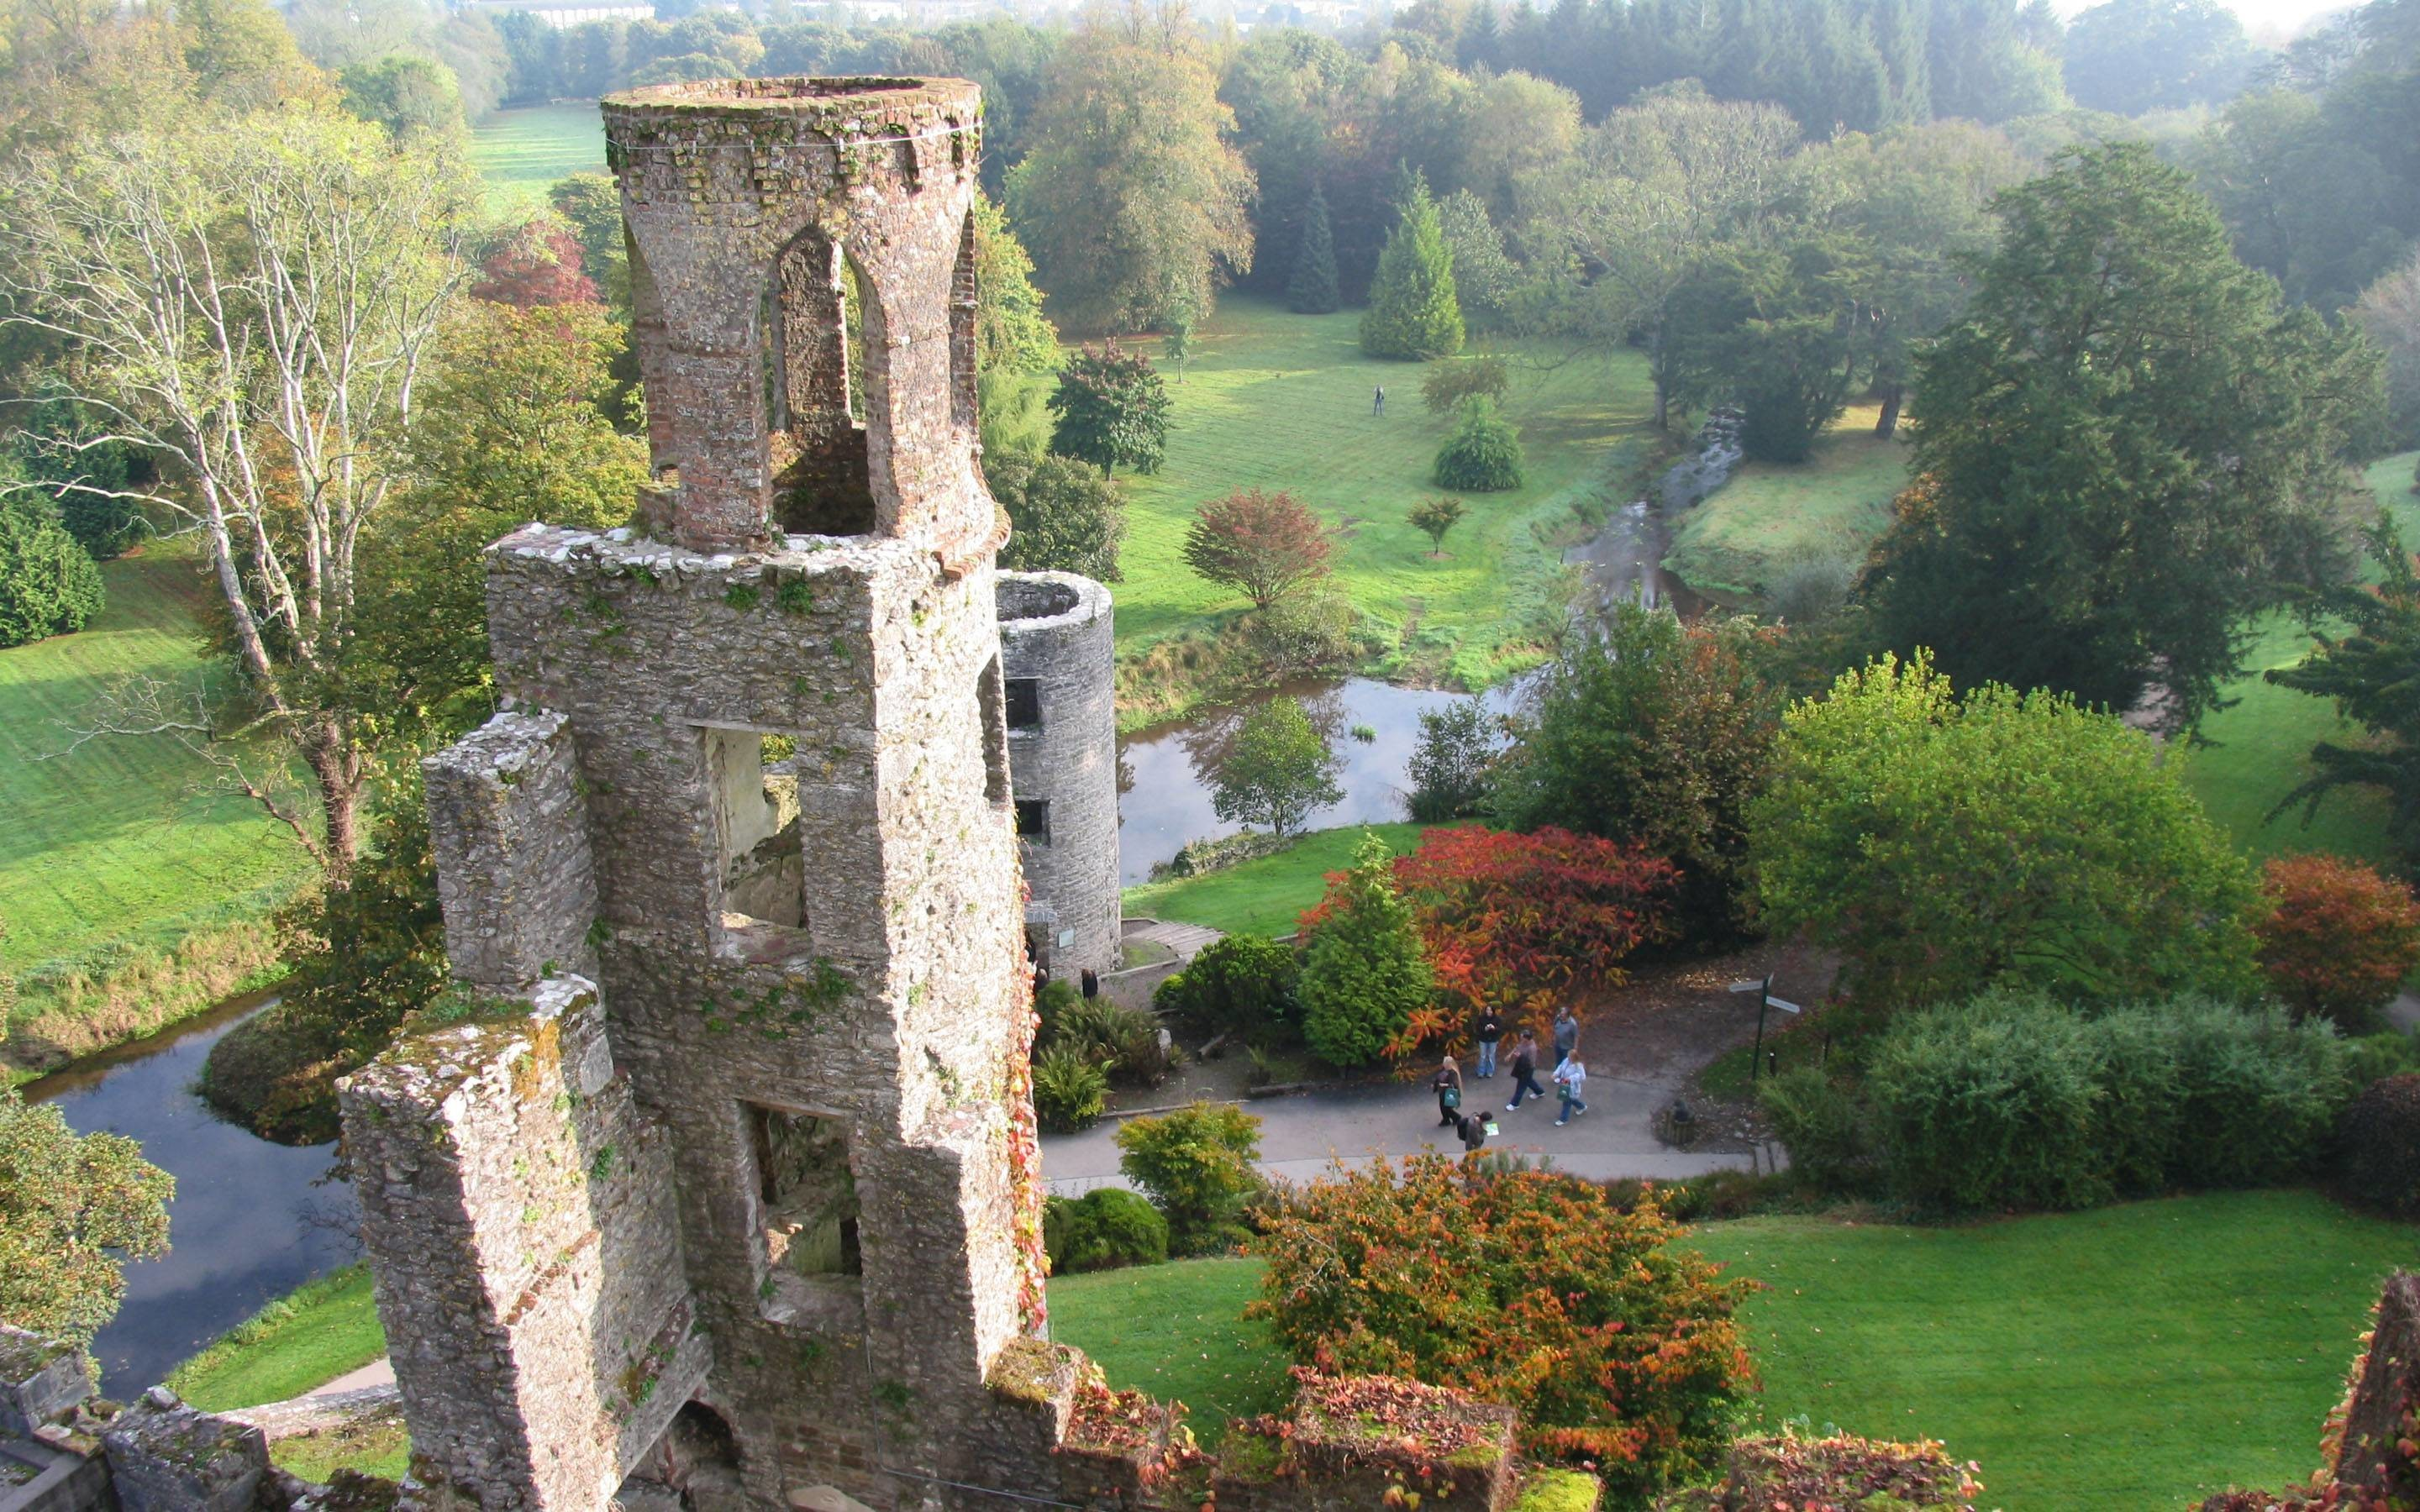 2880x1800 Blarney Castle,Ireland | Wallpapers for PC